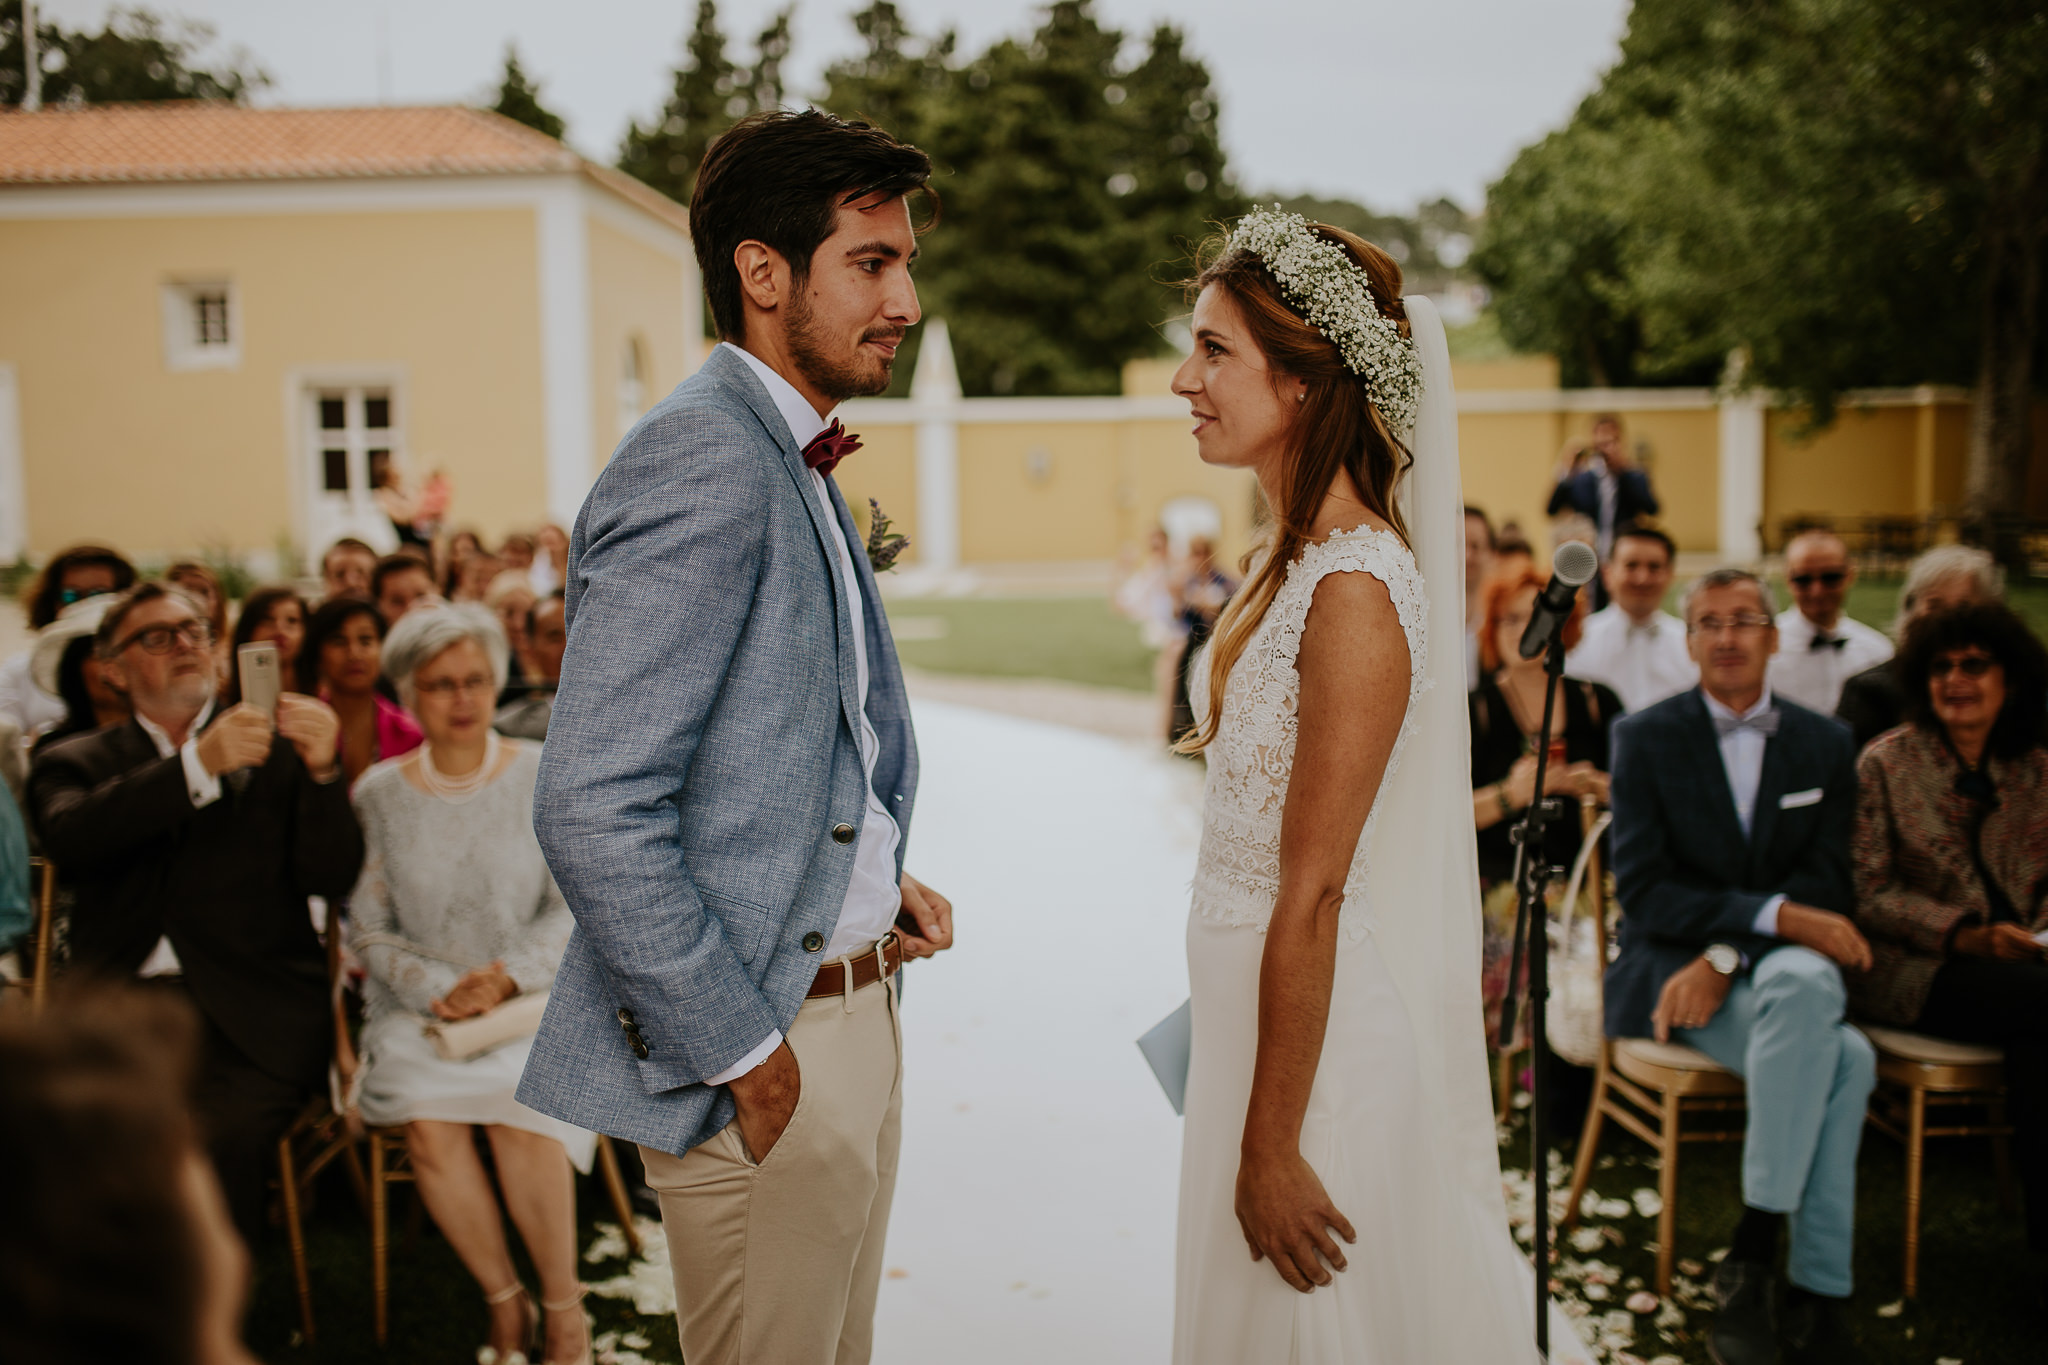 romina_thomas_destination_wedding_photography_fotografia_de_casamento_lisbon_sintra_penha_longa_resort-5